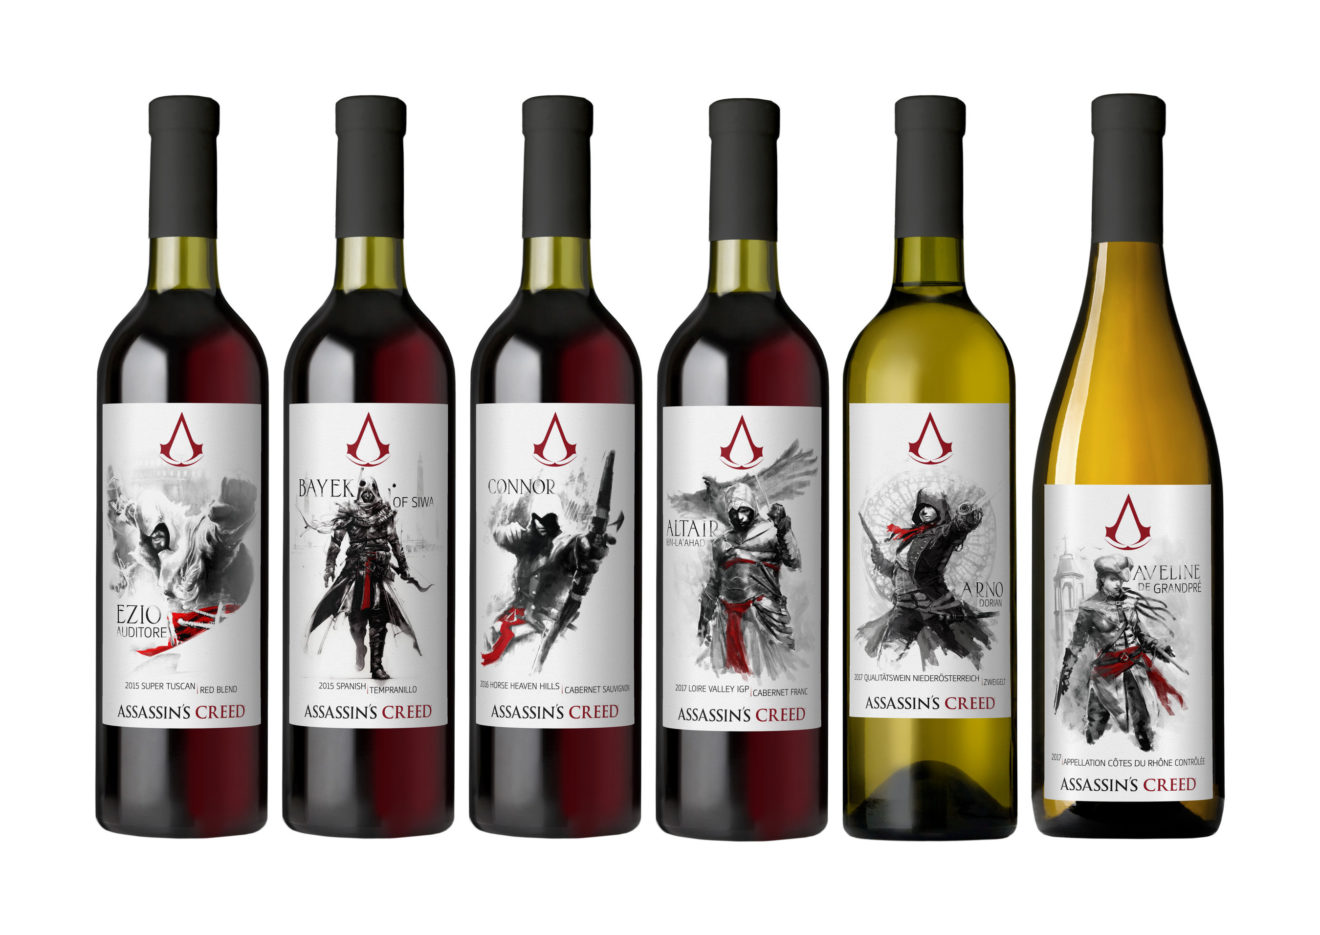 Lot18.com And Ubisoft® Launch New Assassin's Creed® Wine Collection Inspired By The Hit Franchise